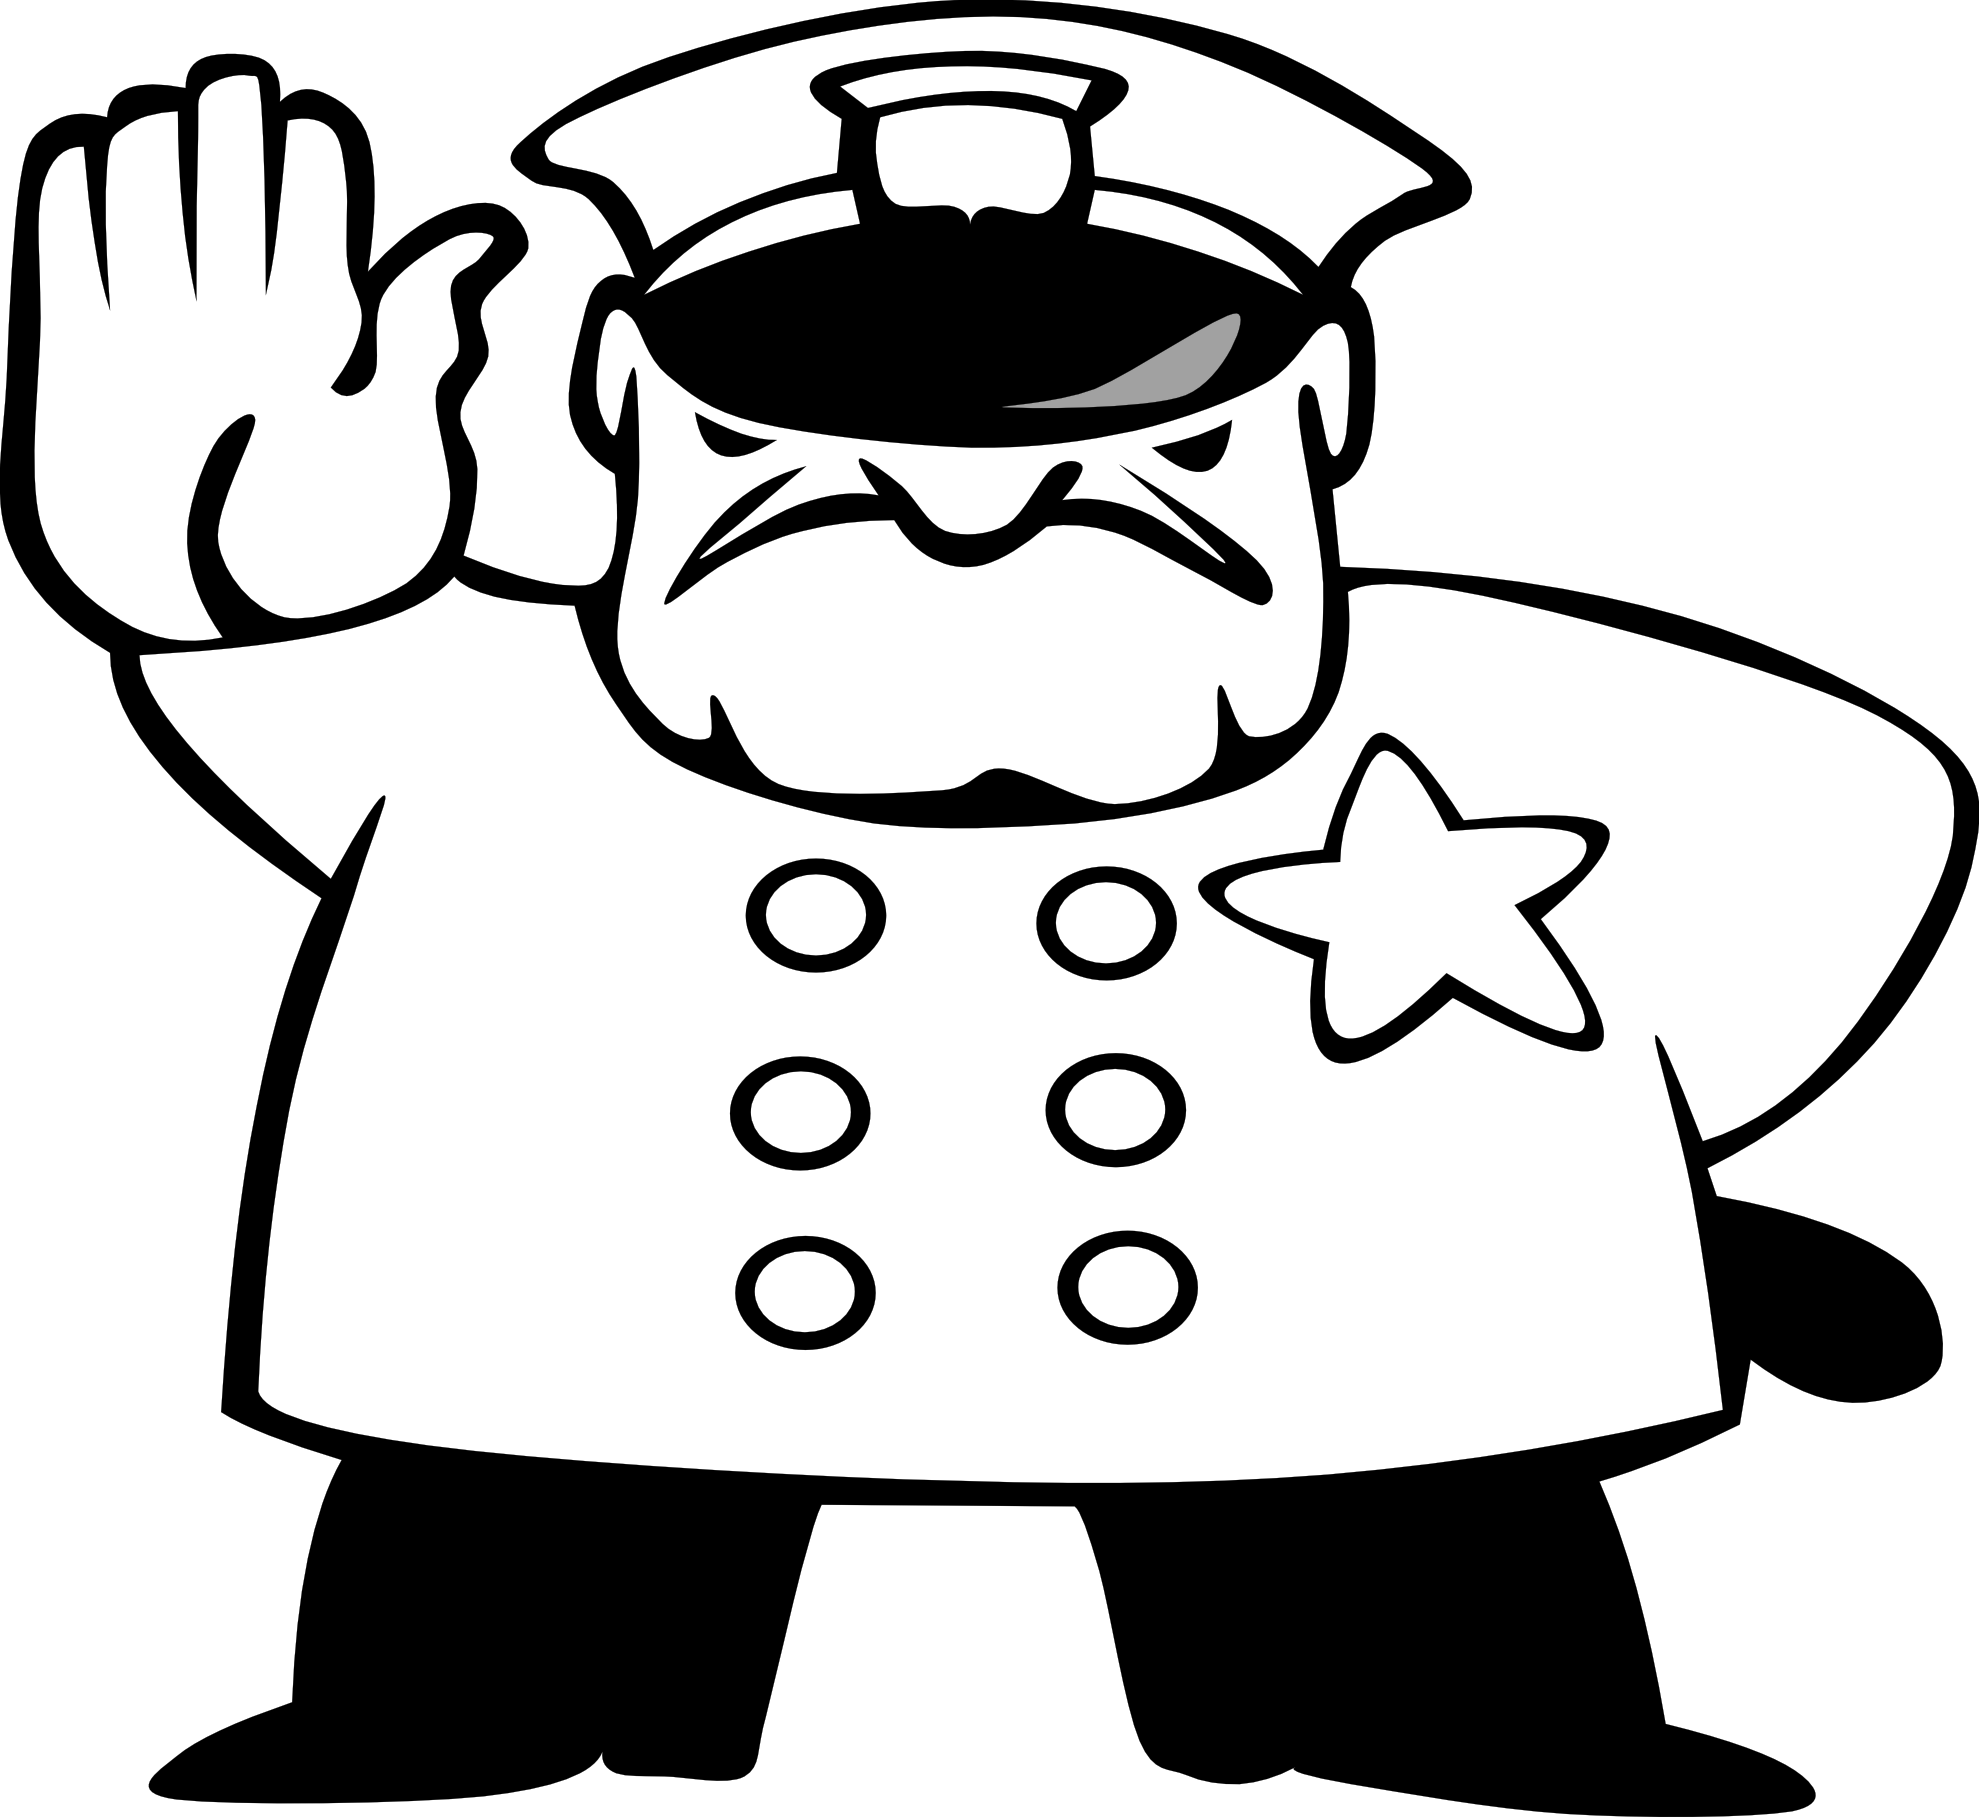 Justice clipart speedy trial. Constitution for law enforcement